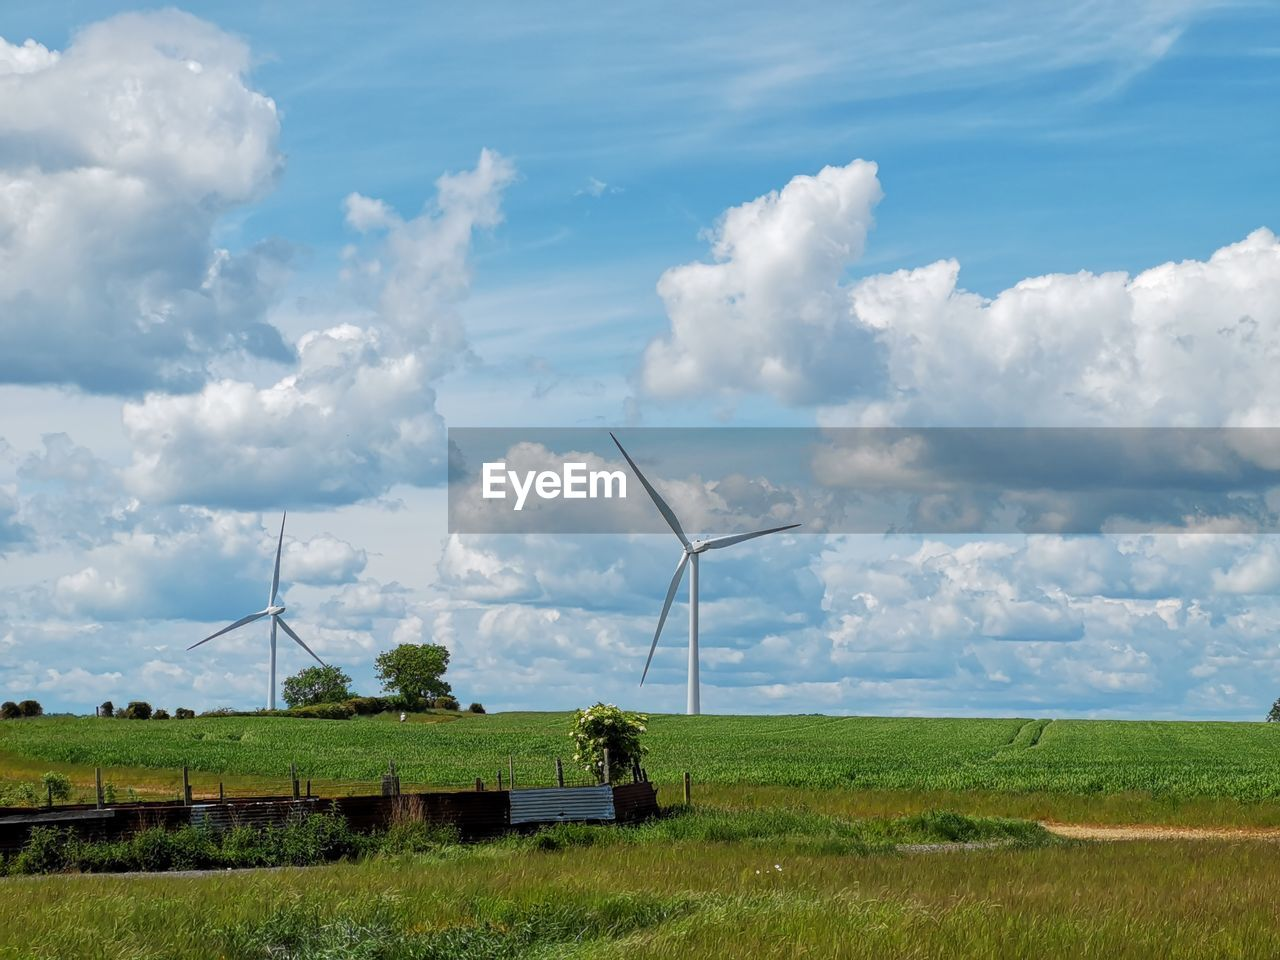 environment, fuel and power generation, renewable energy, cloud - sky, wind turbine, sky, turbine, alternative energy, environmental conservation, landscape, wind power, land, field, nature, rural scene, day, grass, beauty in nature, scenics - nature, plant, no people, outdoors, sustainable resources, power in nature